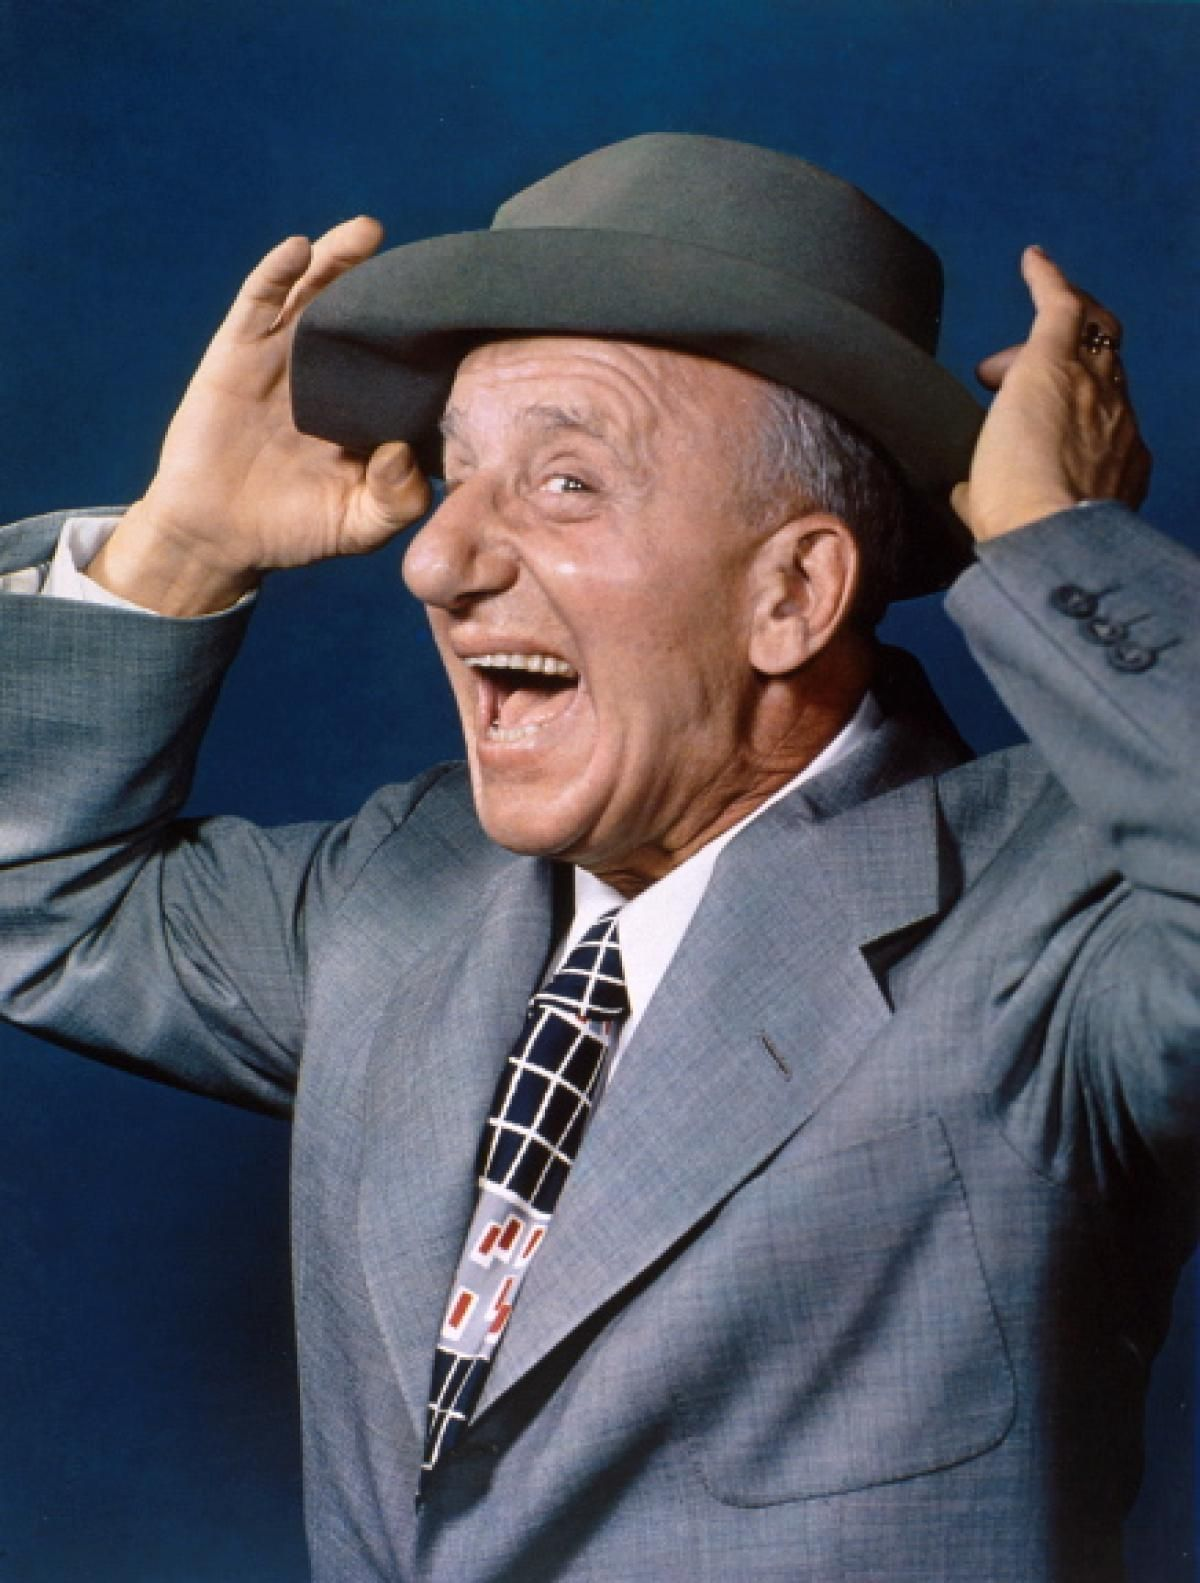 Jimmy Durante posing for a picture